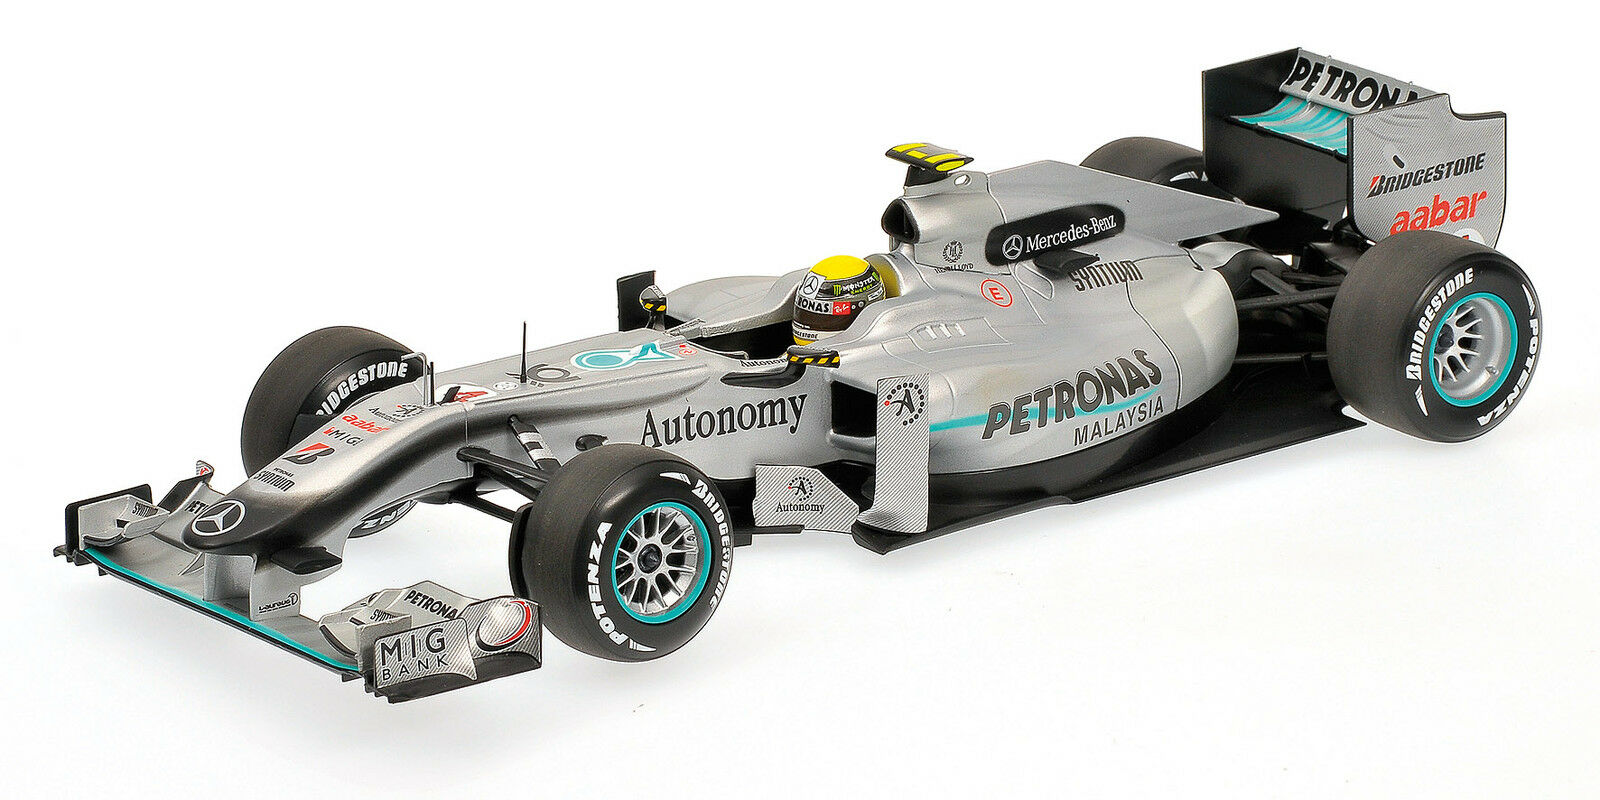 Mercedes GP W01 Formula 1 Nico Rosberg 2010 1 18 Model 110100004 MINICHAMPS